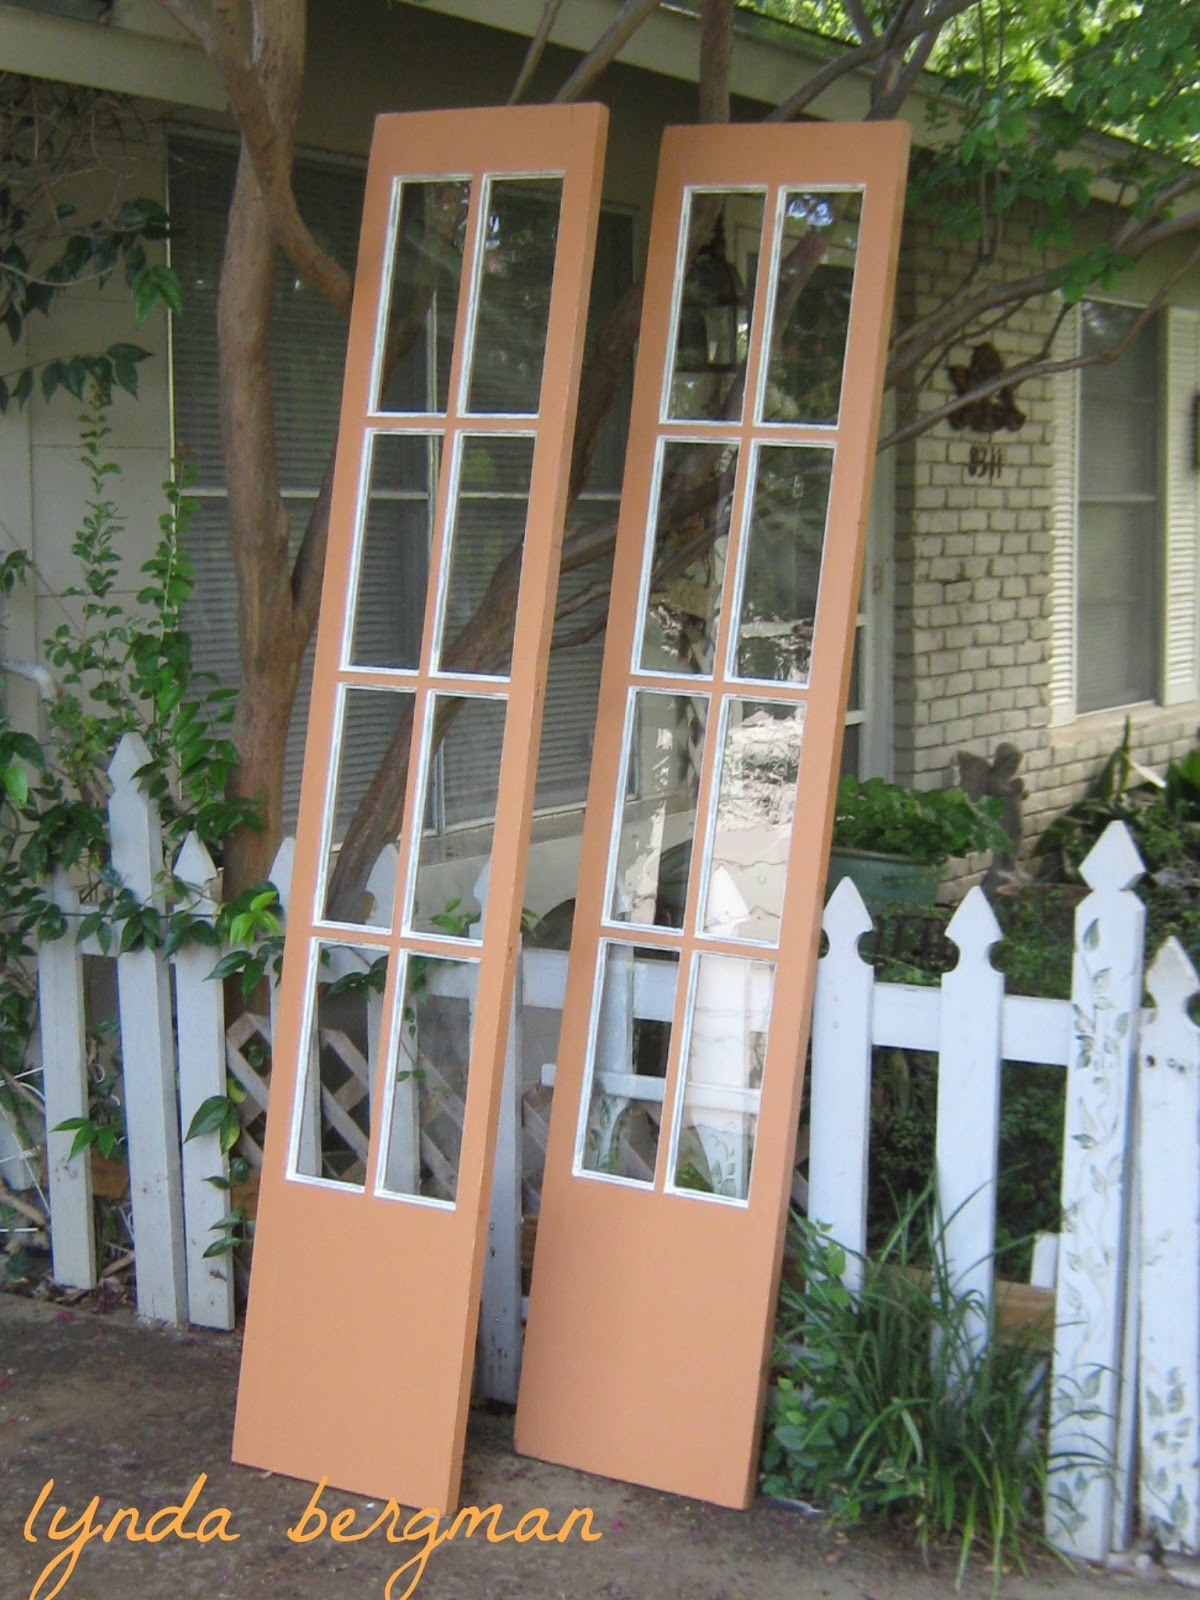 Lynda bergman decorative artisan orange french doors for pattis orange french doors for pattis pantry rubansaba